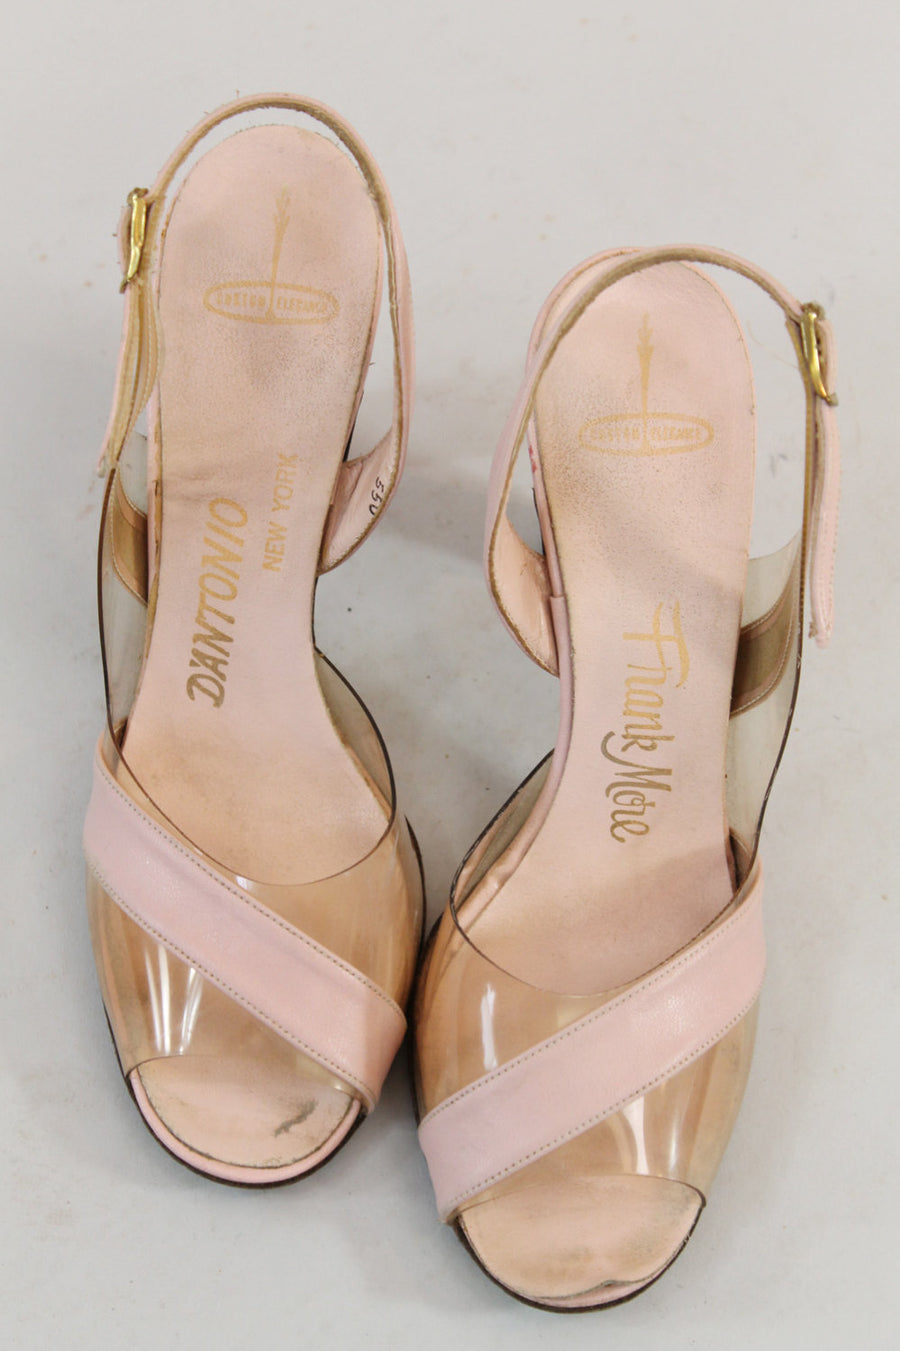 1950s Frank More lucite shoes size 6 | vintage slingback sandals